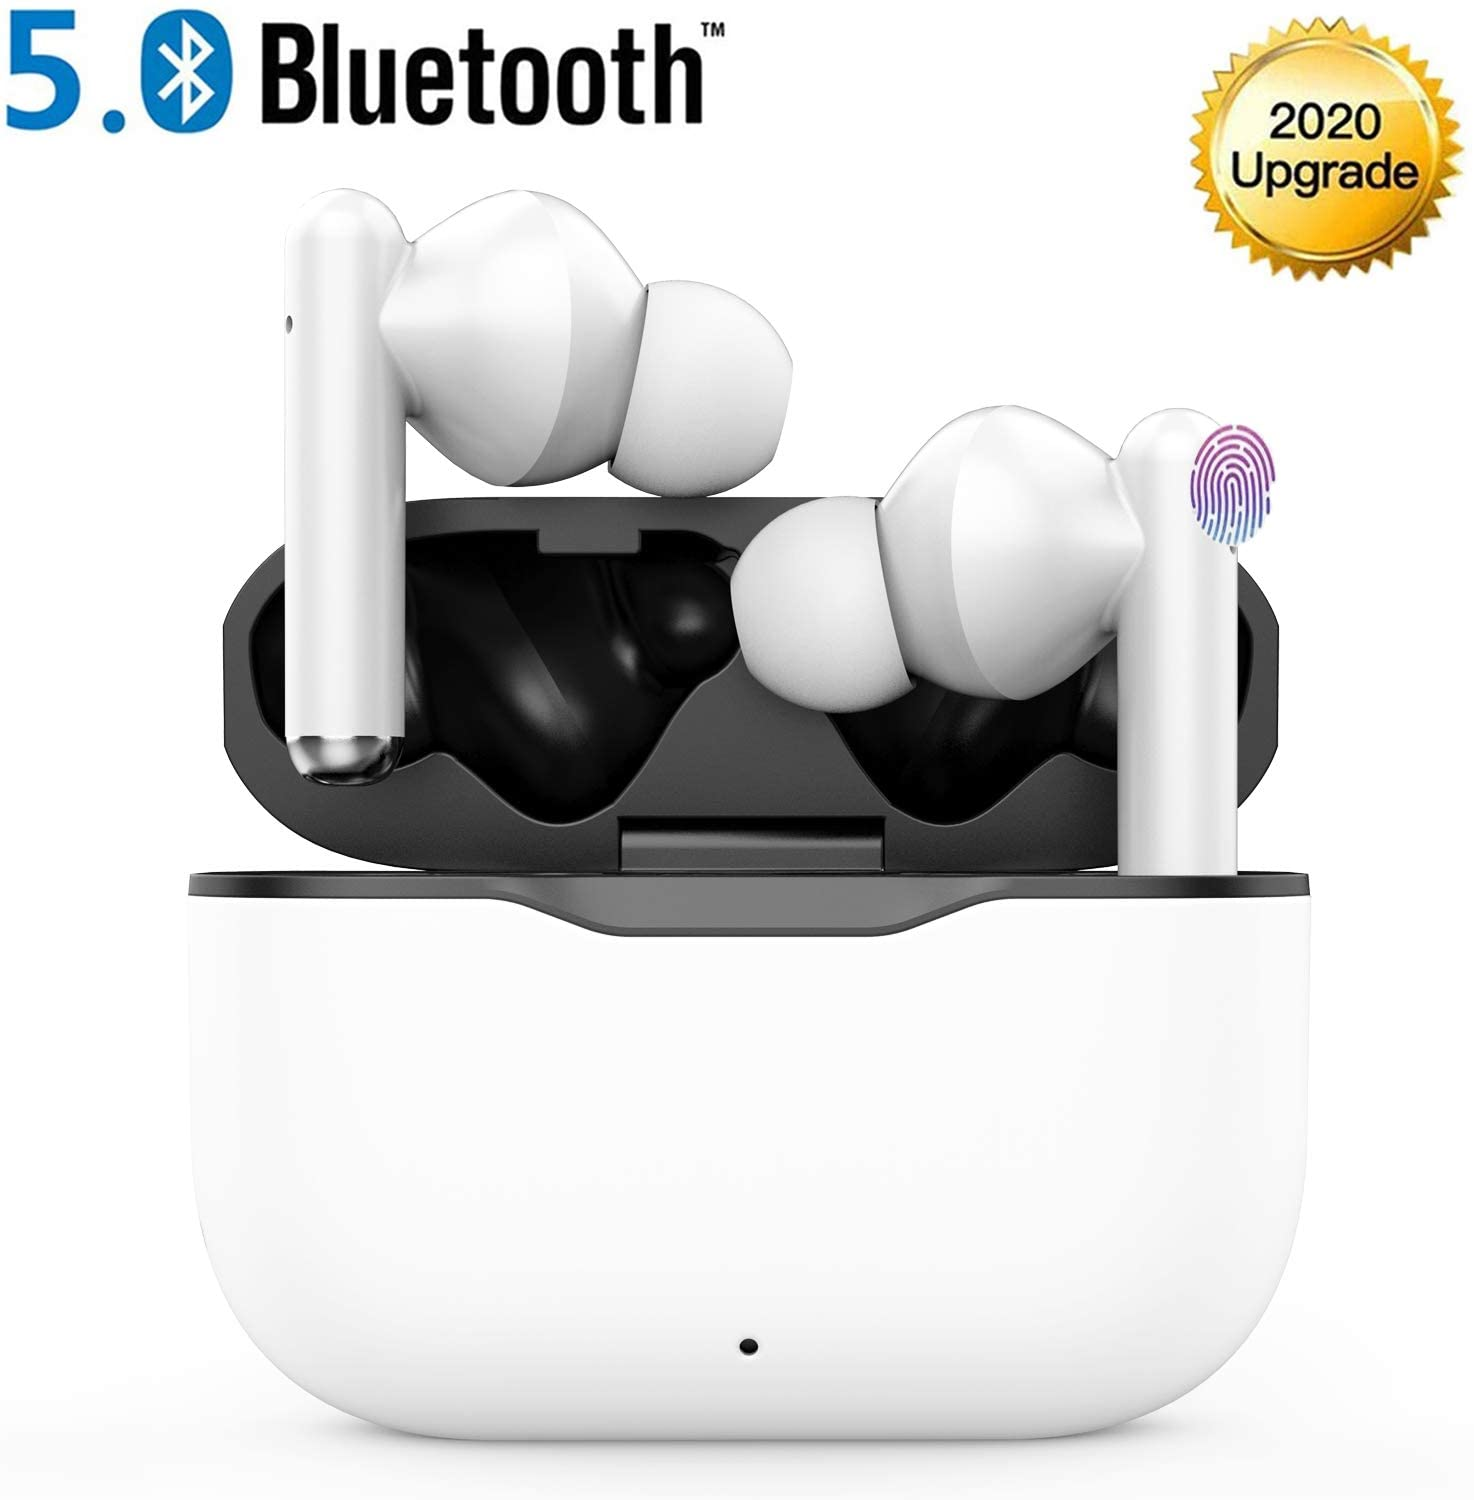 Wireless Earbuds, Bluetooth 5.0 TWS Stereo Wireless Earbuds Microphone Web Meeting Waterproof Bluetooth Headphones Touch Control Wireless Earphones with Charging Case Headset